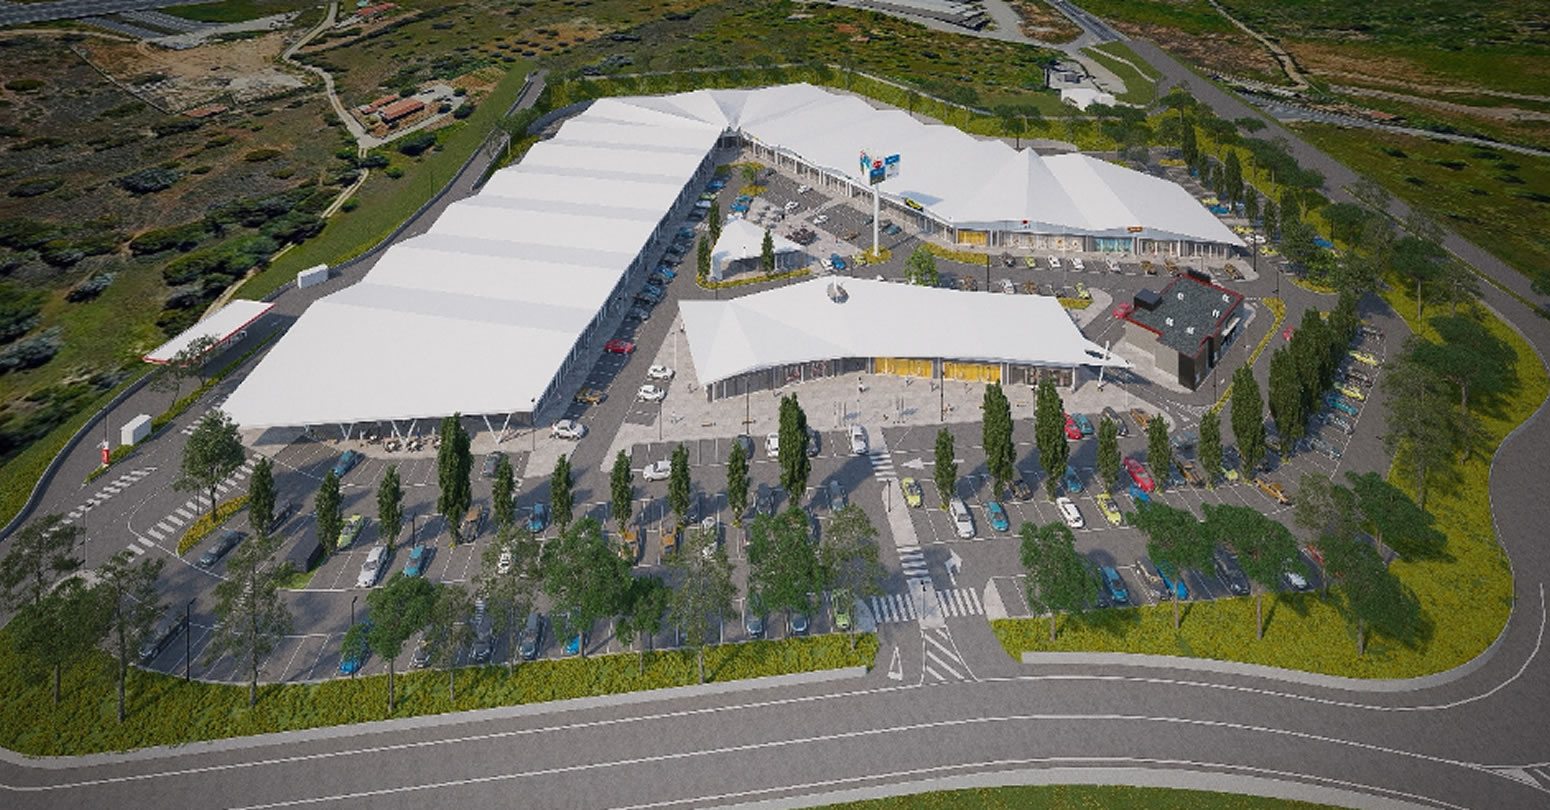 New retail park in Alcantarilha to open summer 2022